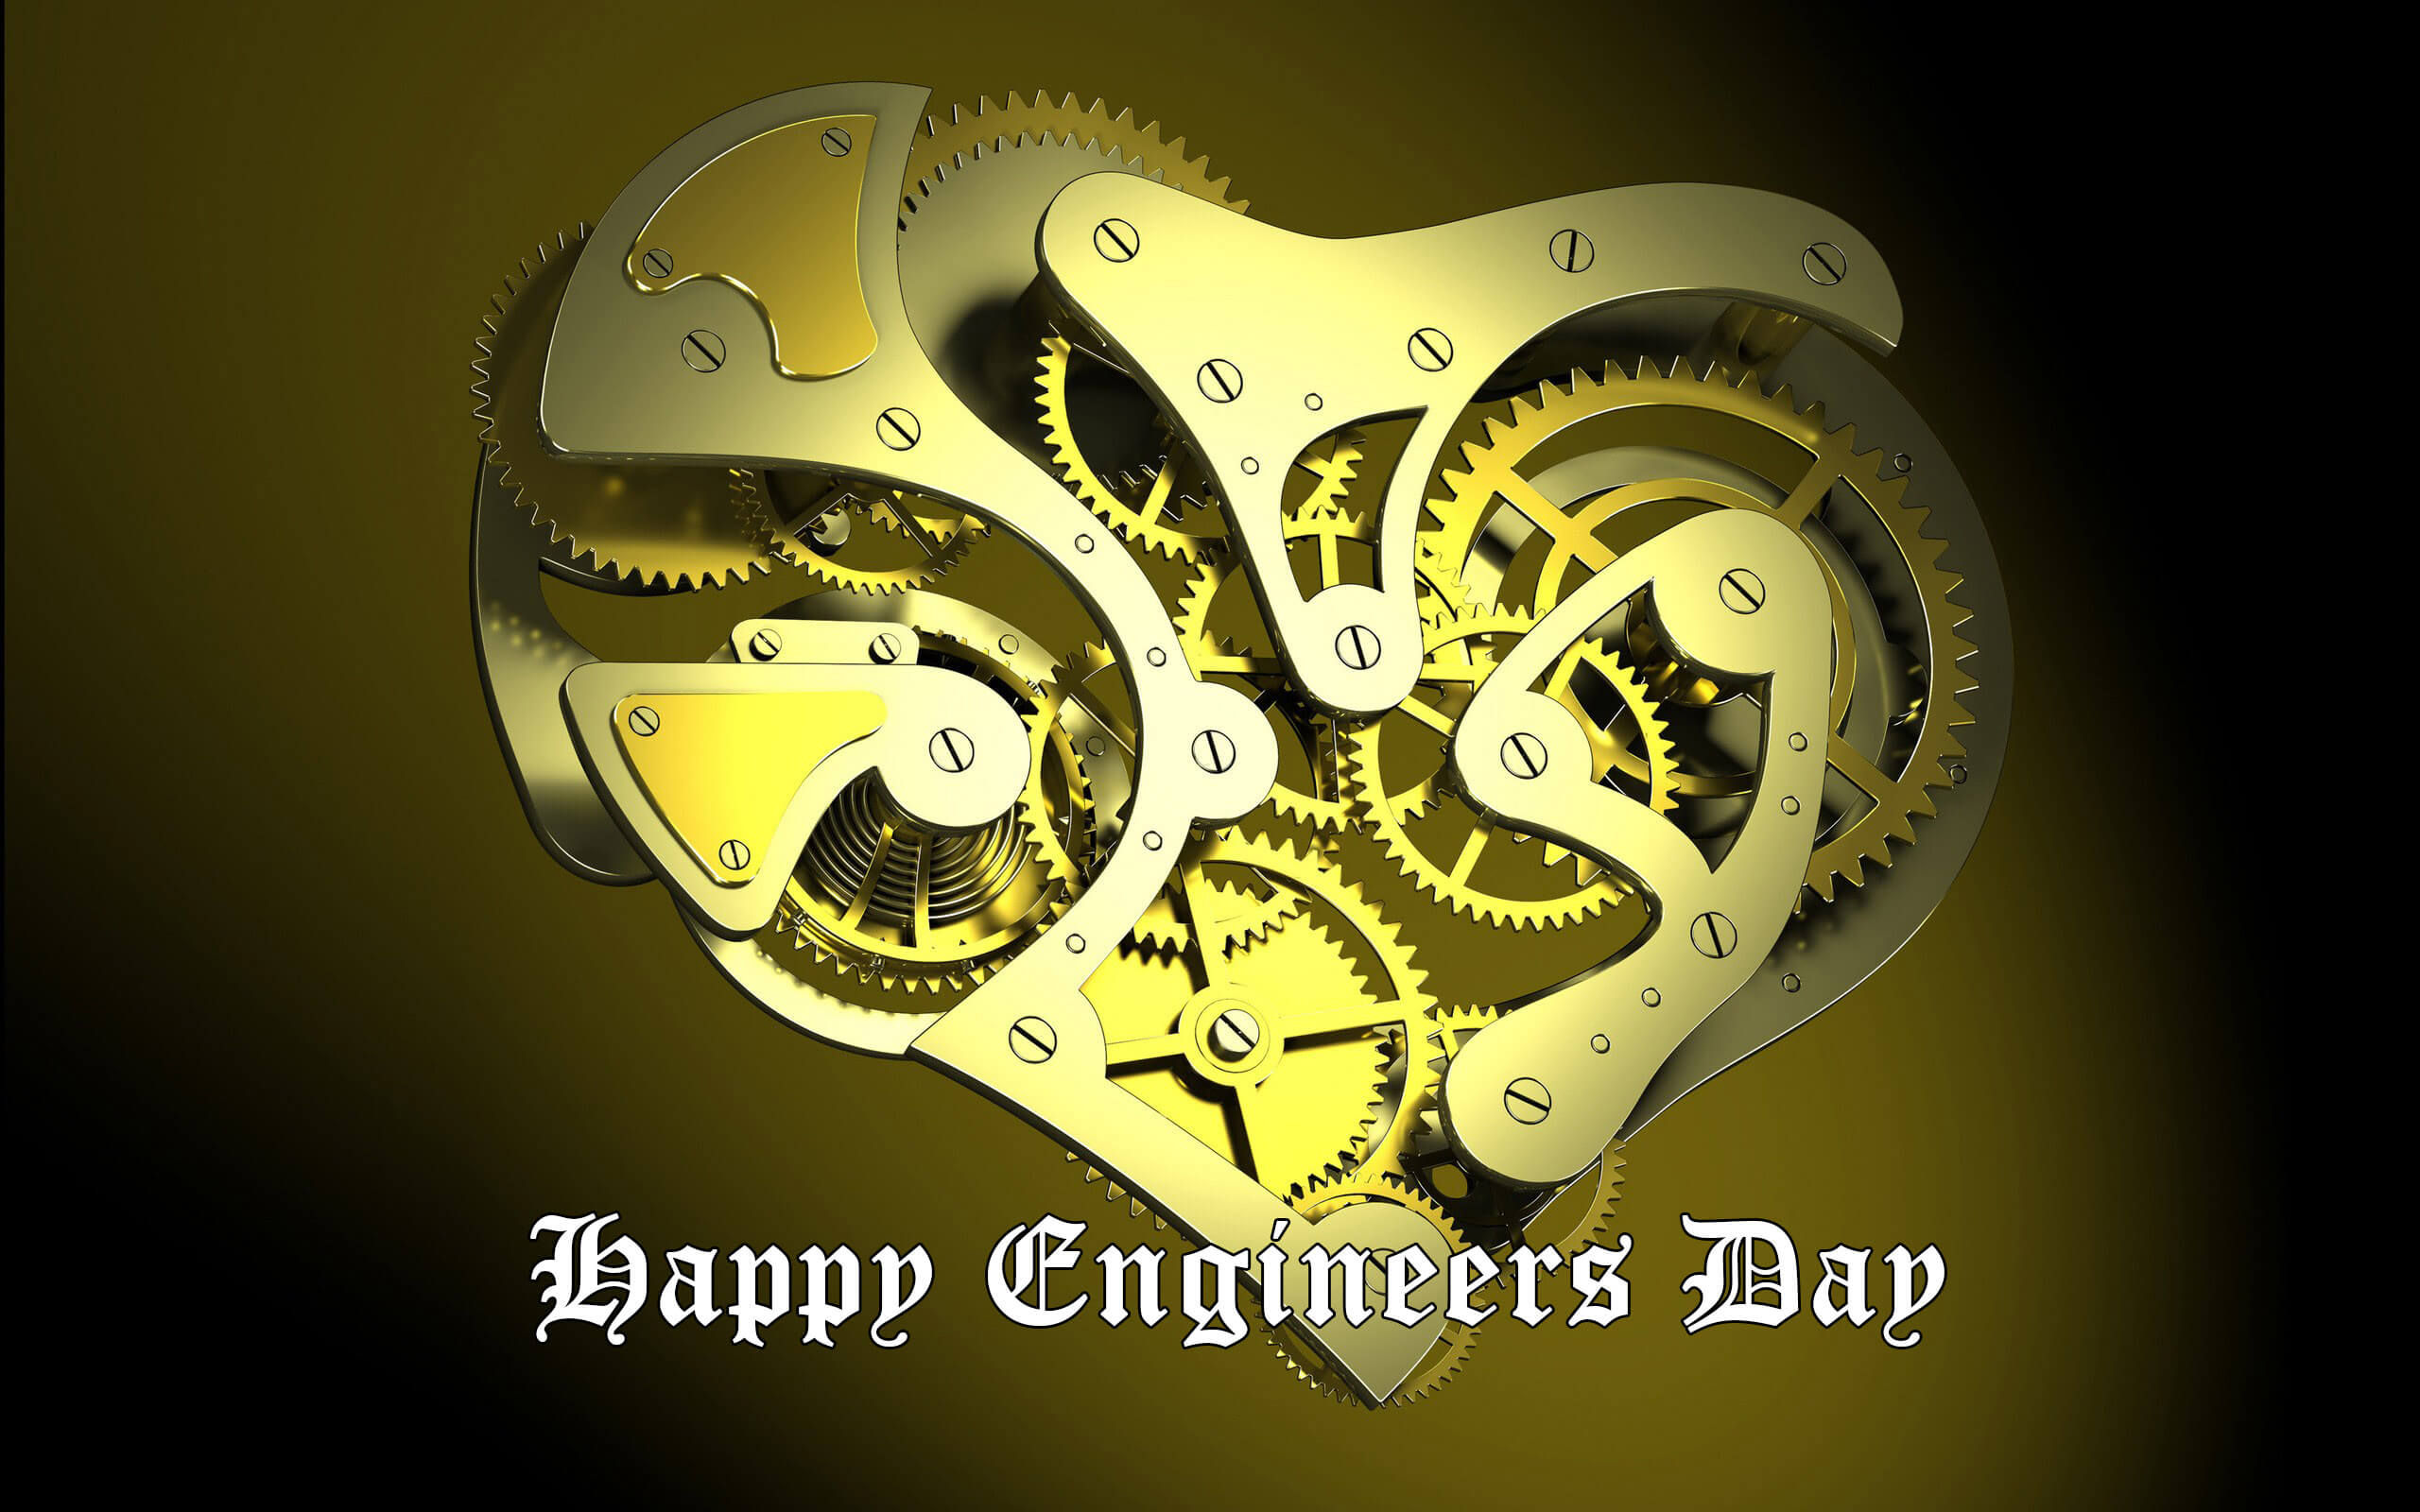 happy engineers day greetings mechanical engineering lever wheel hd wallpaper